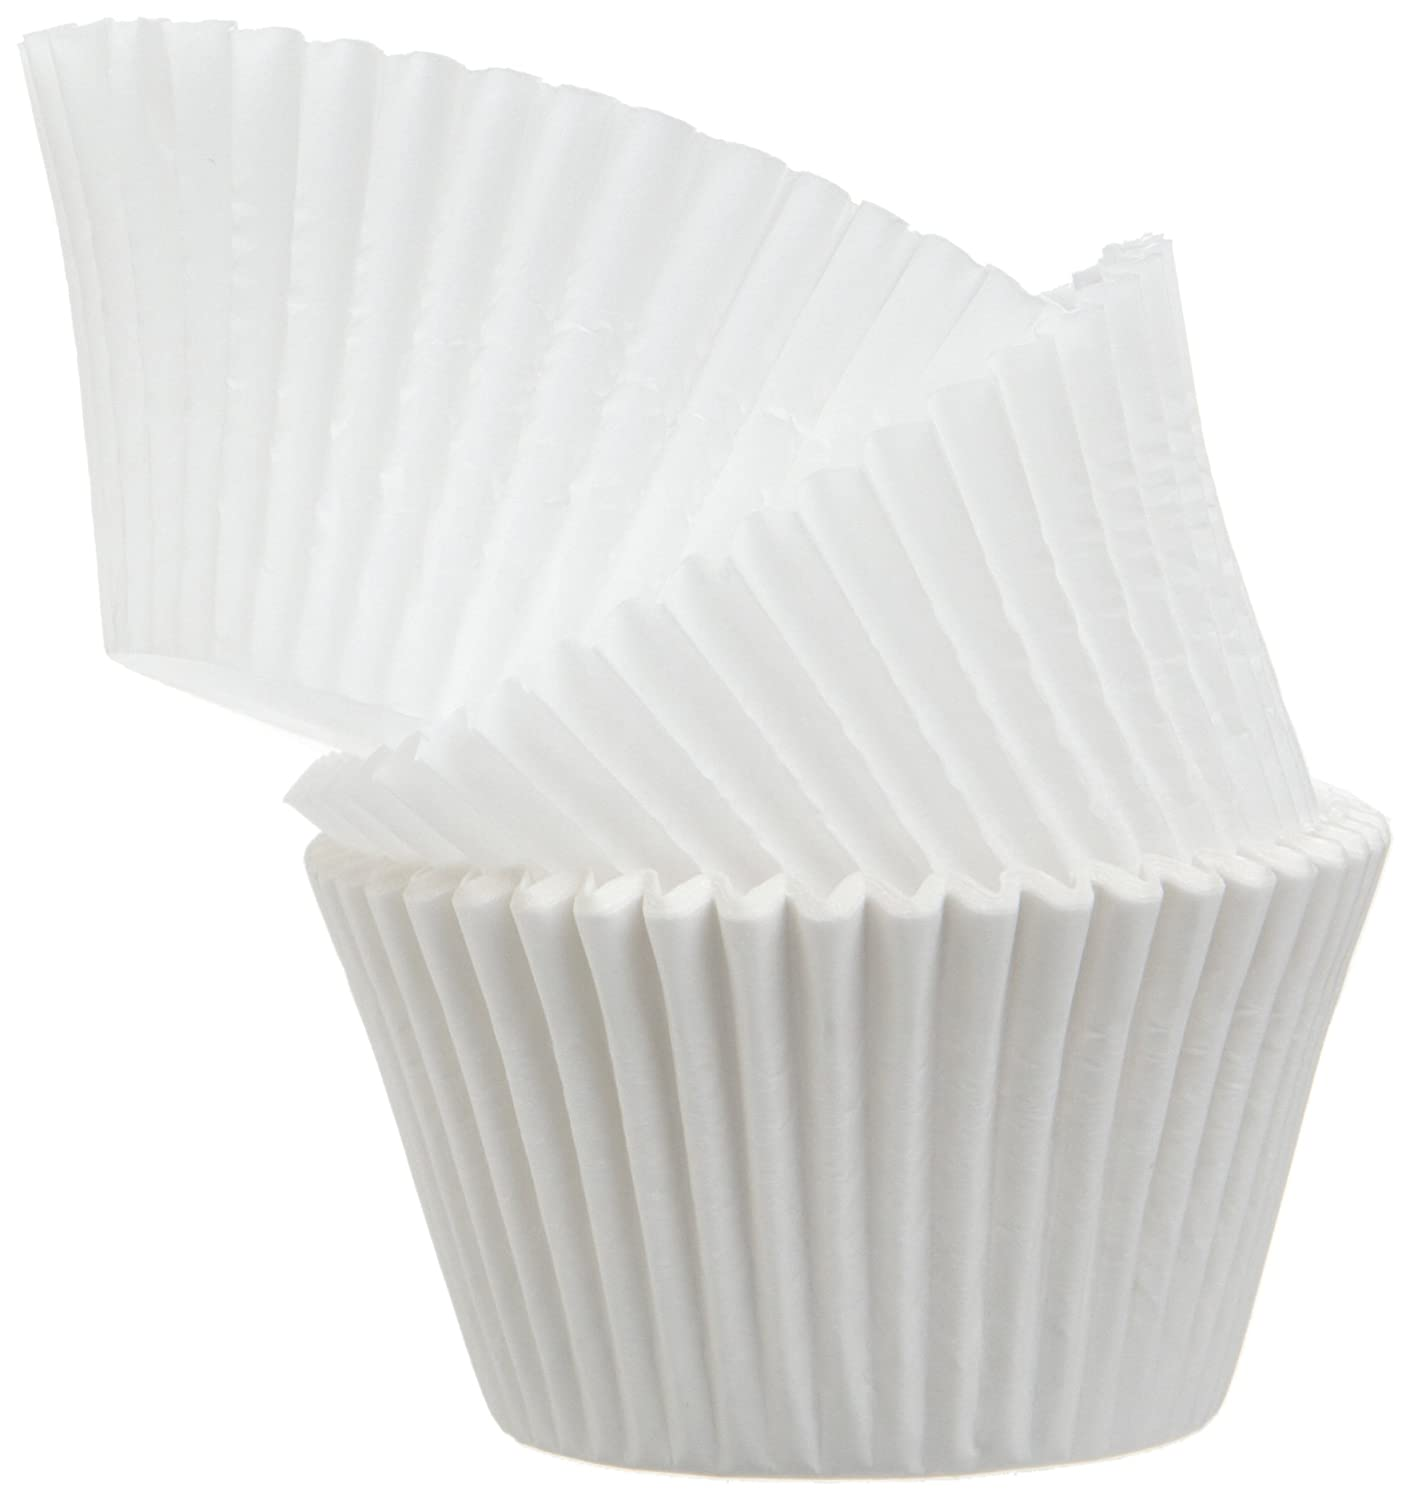 Regency Wraps Baking Cups for Cupcakes and Muffins, White Jumbo, 25 Count RW1115T